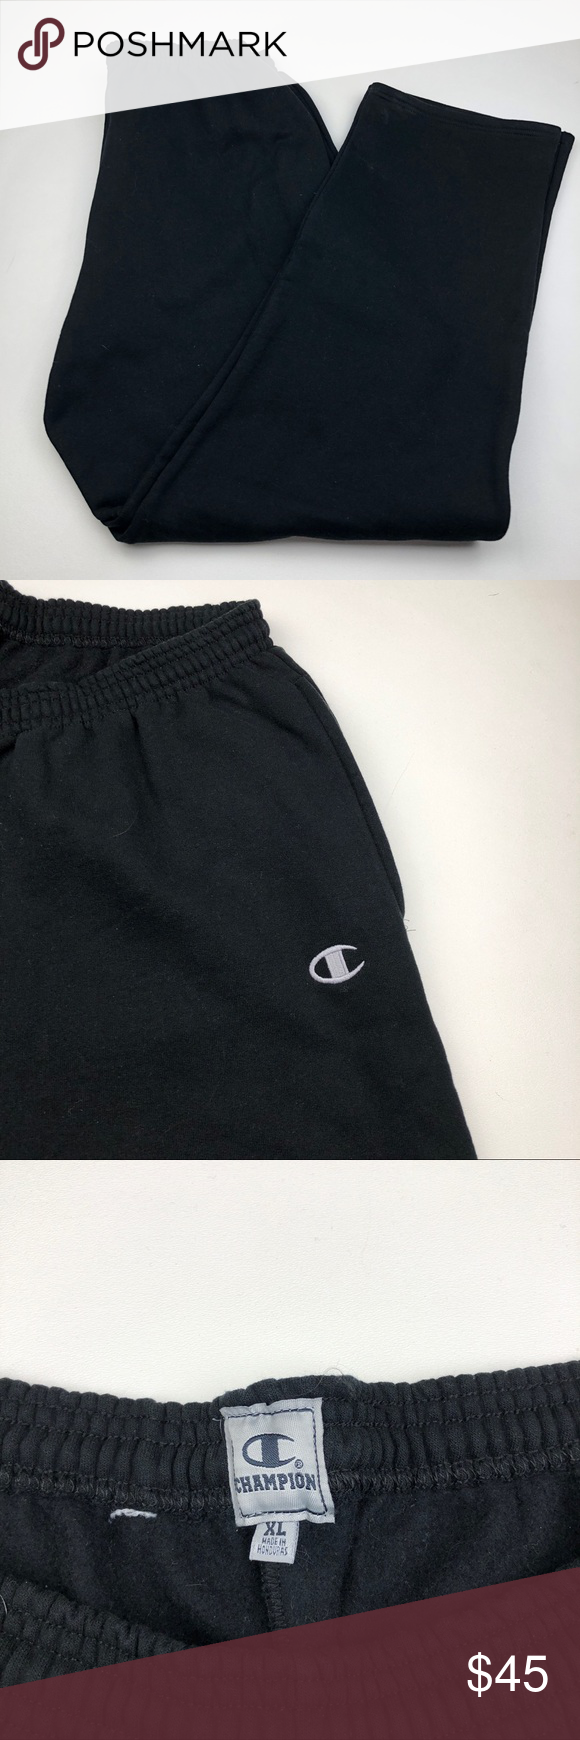 62b1b13a584 Men s Champion Big C Chainstitch Sweatpants Black Champion Big C  Chainstitch Sweatpants Black Mens X-Large New without tags For sale is a  Pair of Champion ...